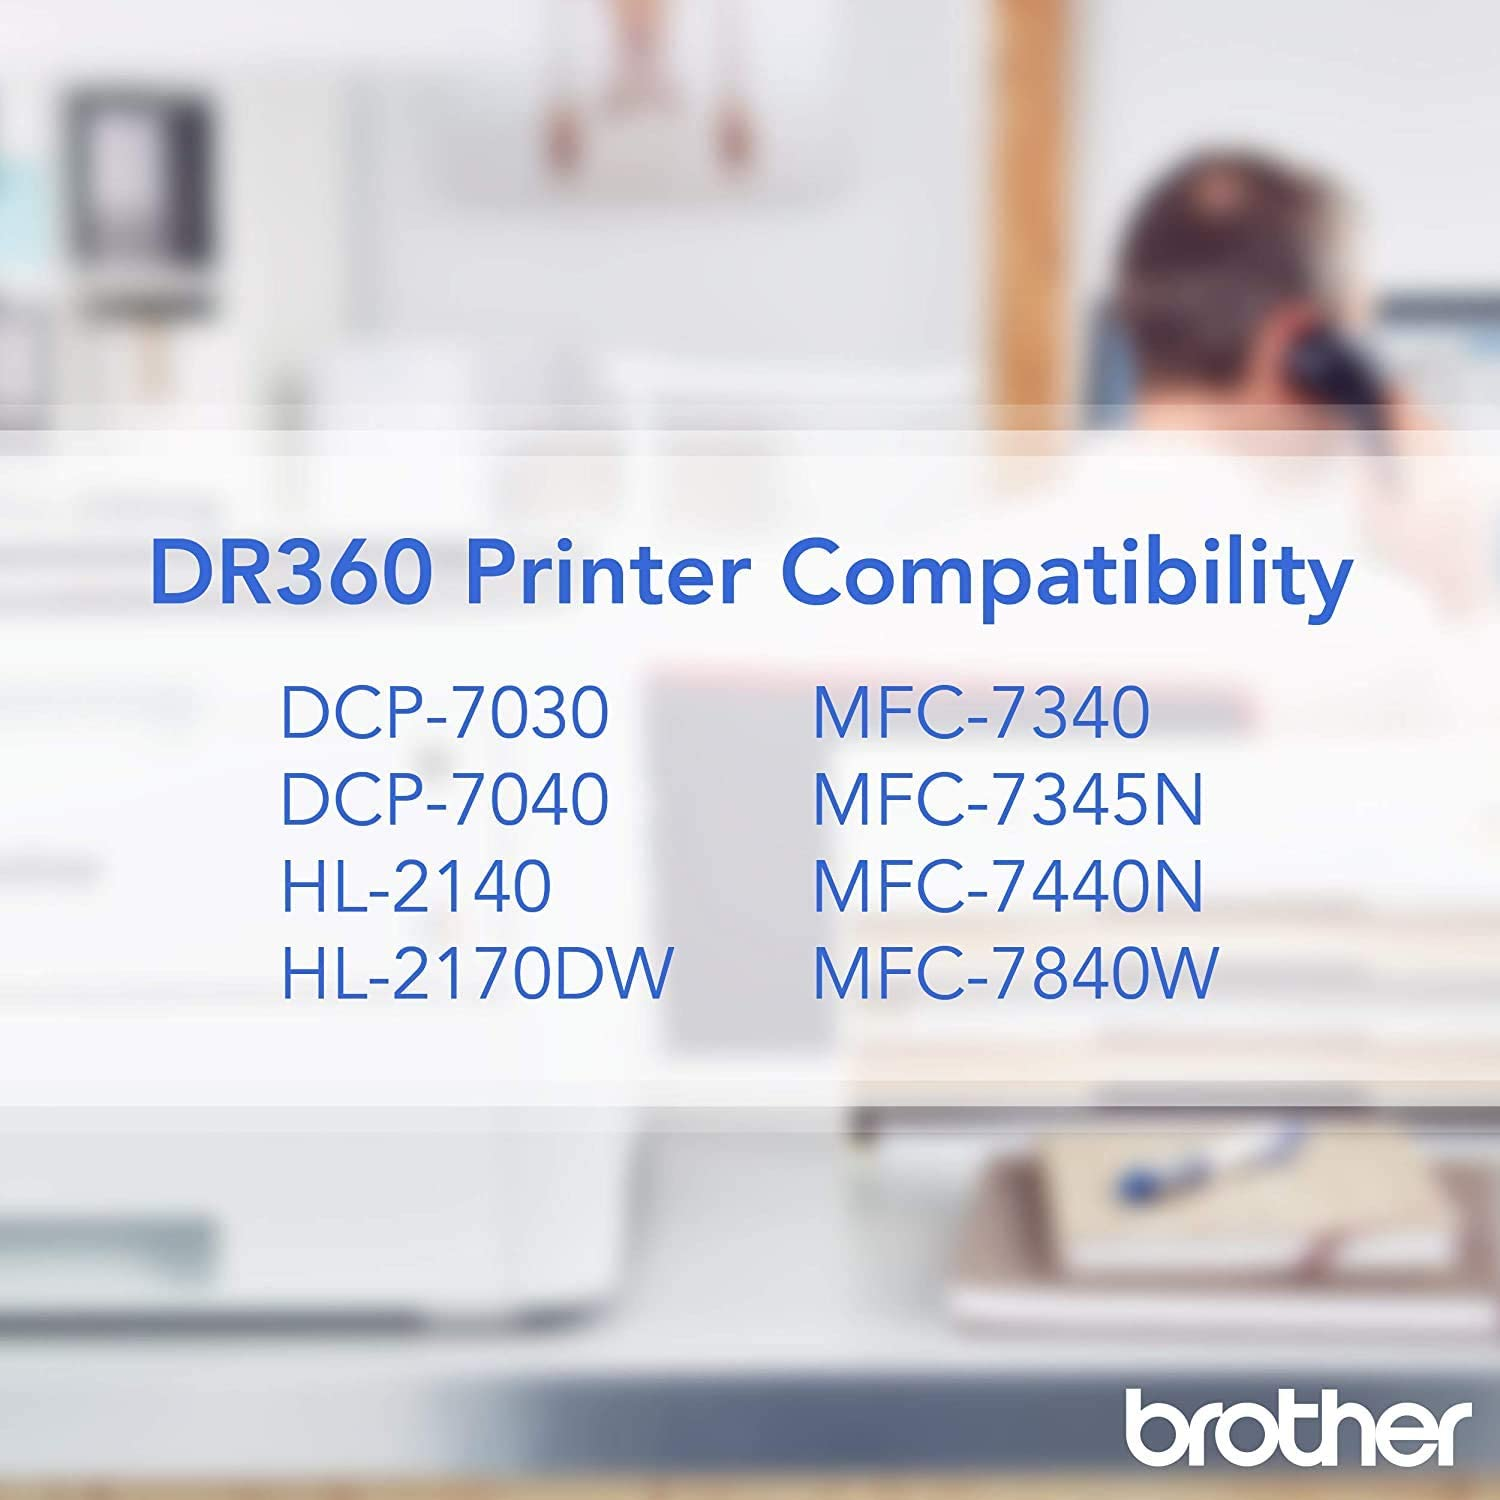 MFC-7340 OEM Brother 250 Page Paper Cassette for DCP7030 MFC7340 DCP-7030 DCP-7040 DCP7040